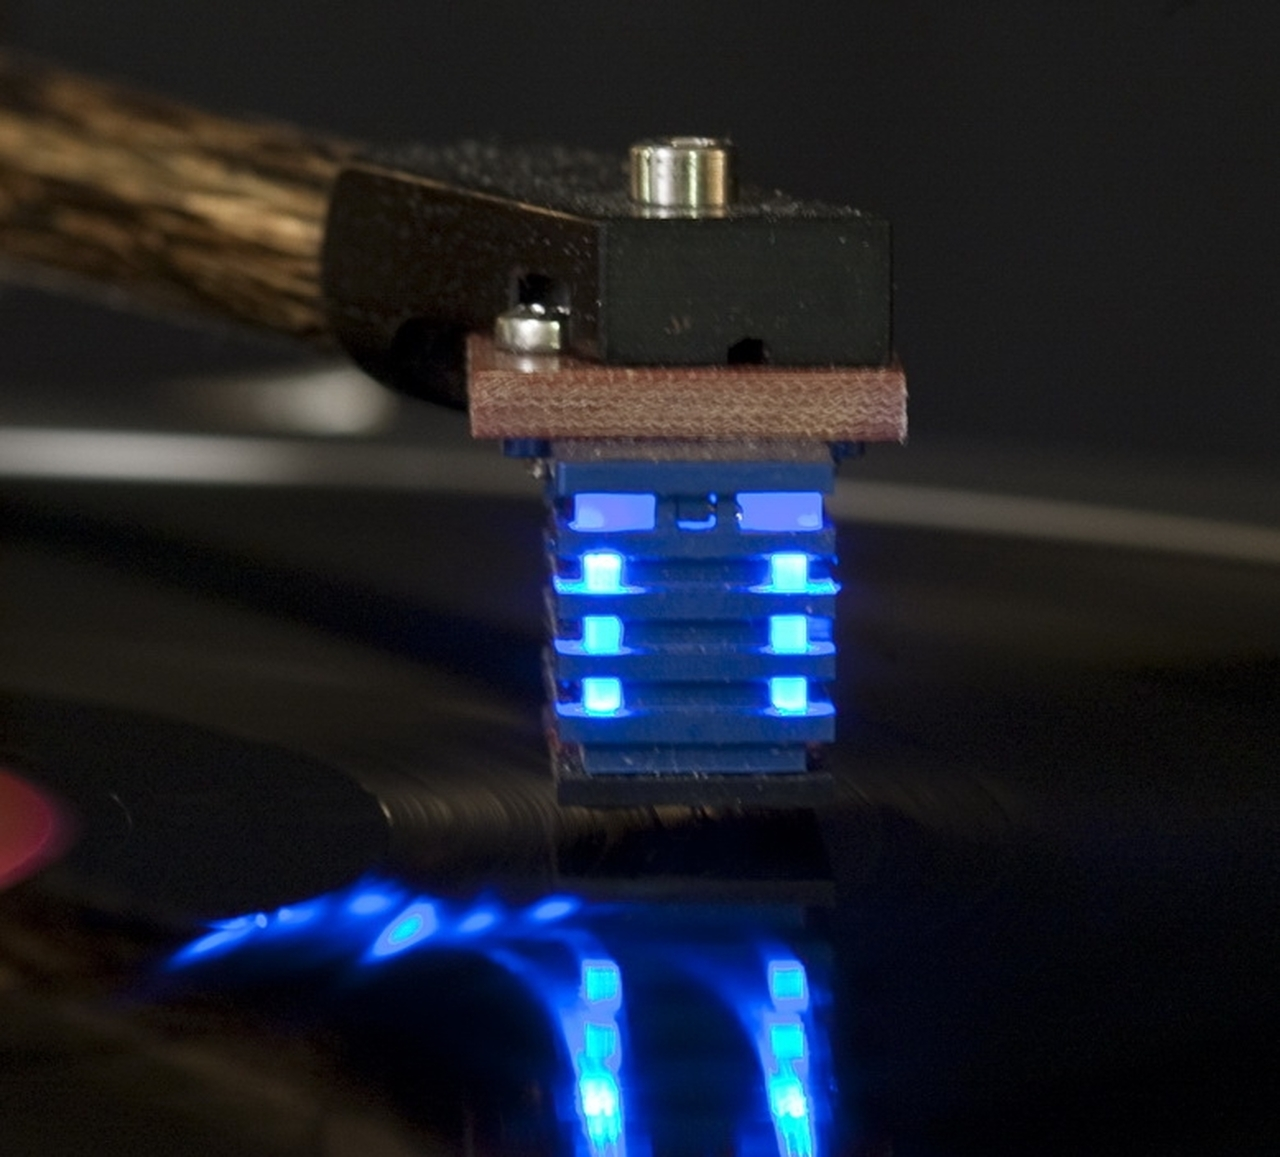 Soundsmith Strain Gauge SG-230 cartridge